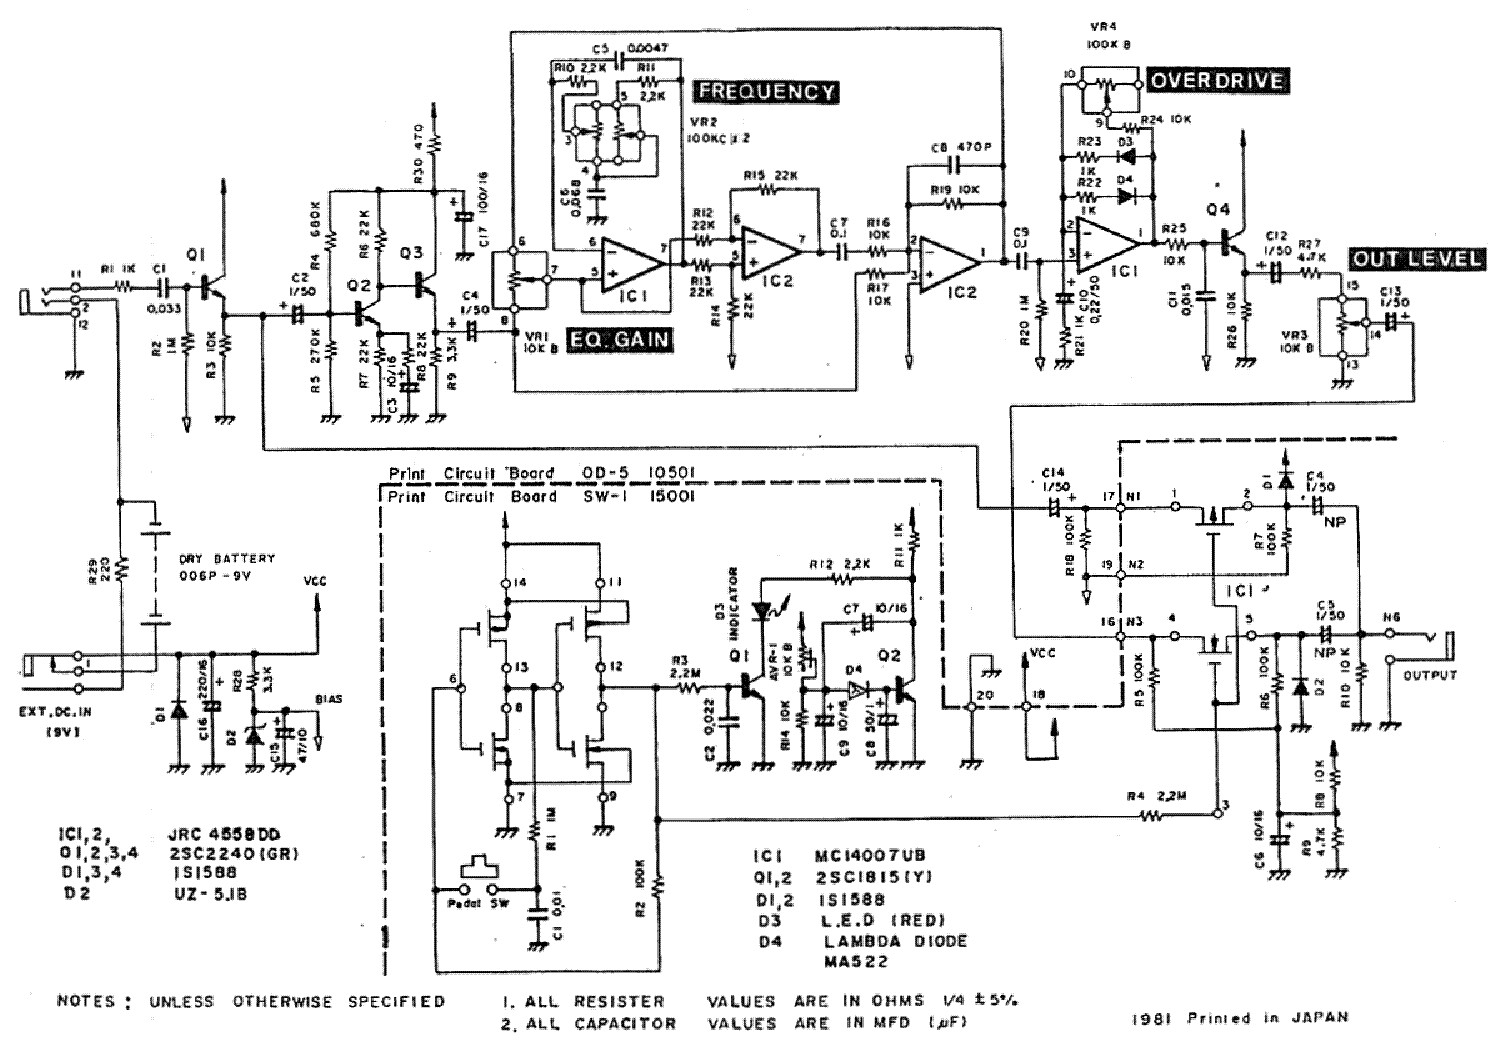 Wiring diagram for guitar effects pedals wiring diagram wiring pearl overdrive od05 guitar effects schematics service manual guitar effects schematics diagrams guitar effects schematics pdfsc1stwiring diagram cheapraybanclubmaster Image collections